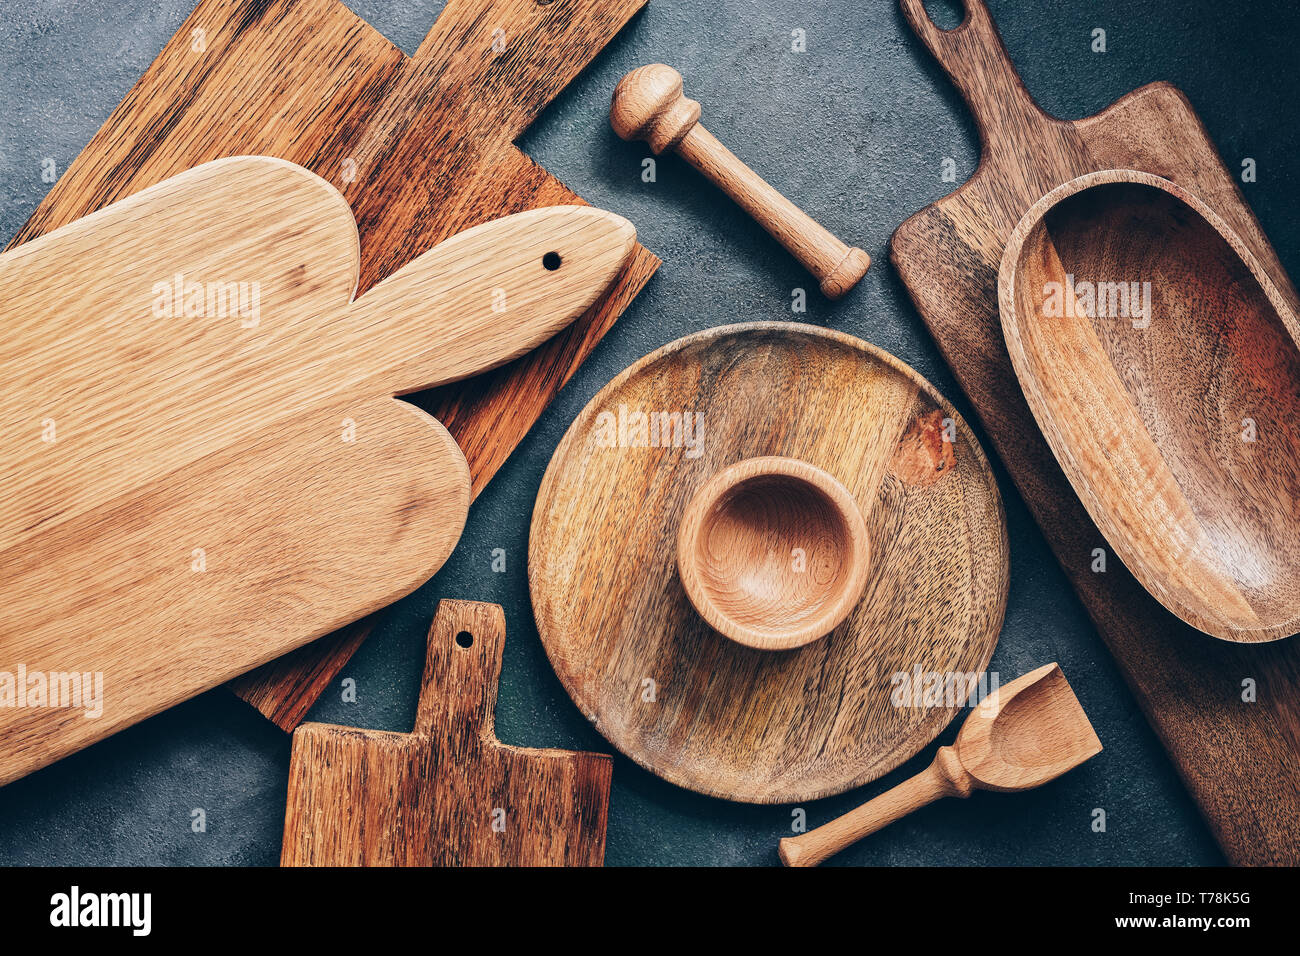 Set of wooden kitchen utensils, cutting boards, bowl, plate, mortar and pestle, scoop. Flat lay, top view - Stock Image